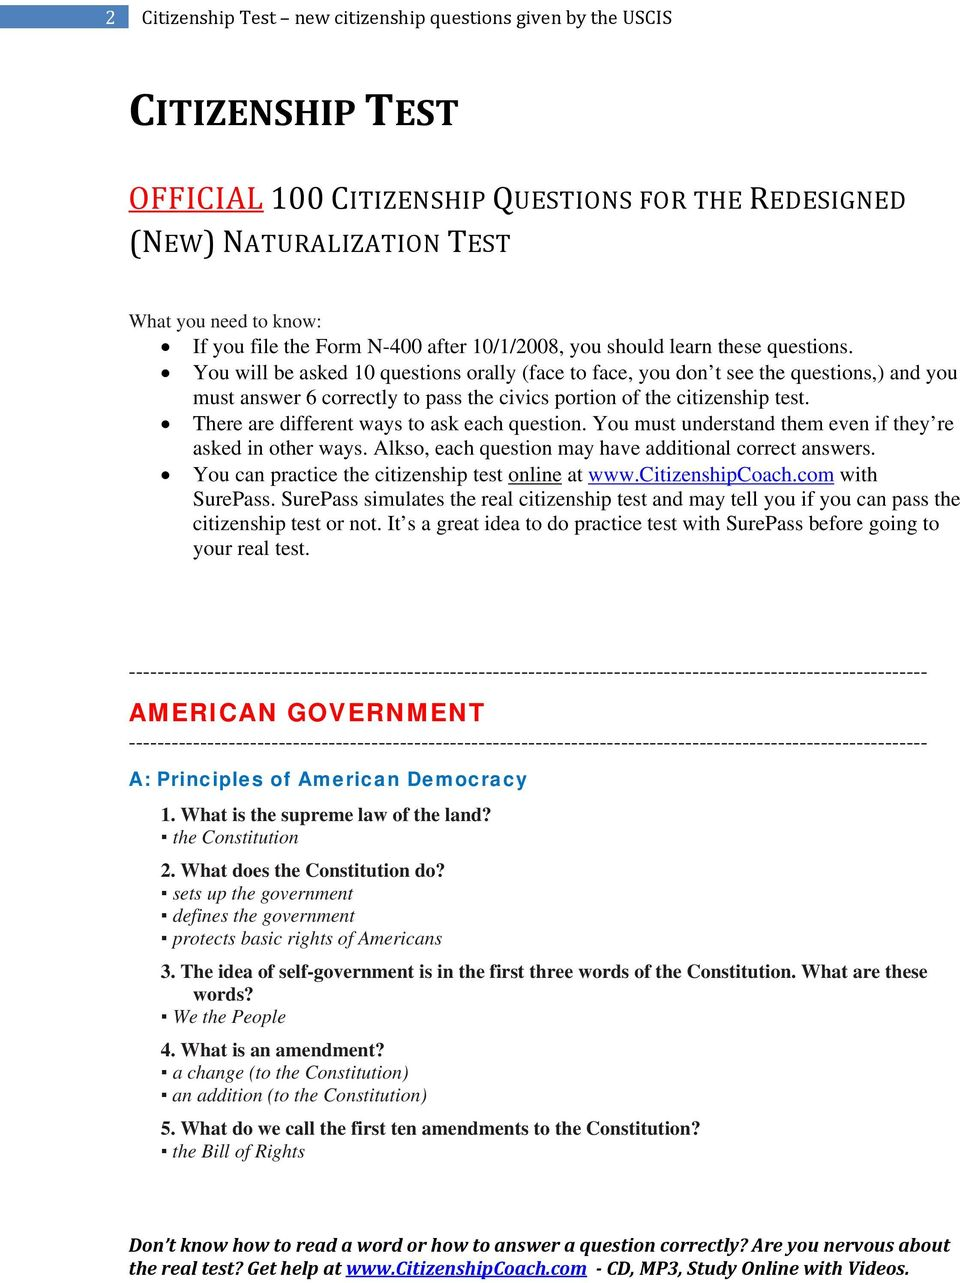 You will be asked 10 questions orally (face to face, you don t see the questions,) and you must answer 6 correctly to pass the civics portion of the citizenship test.